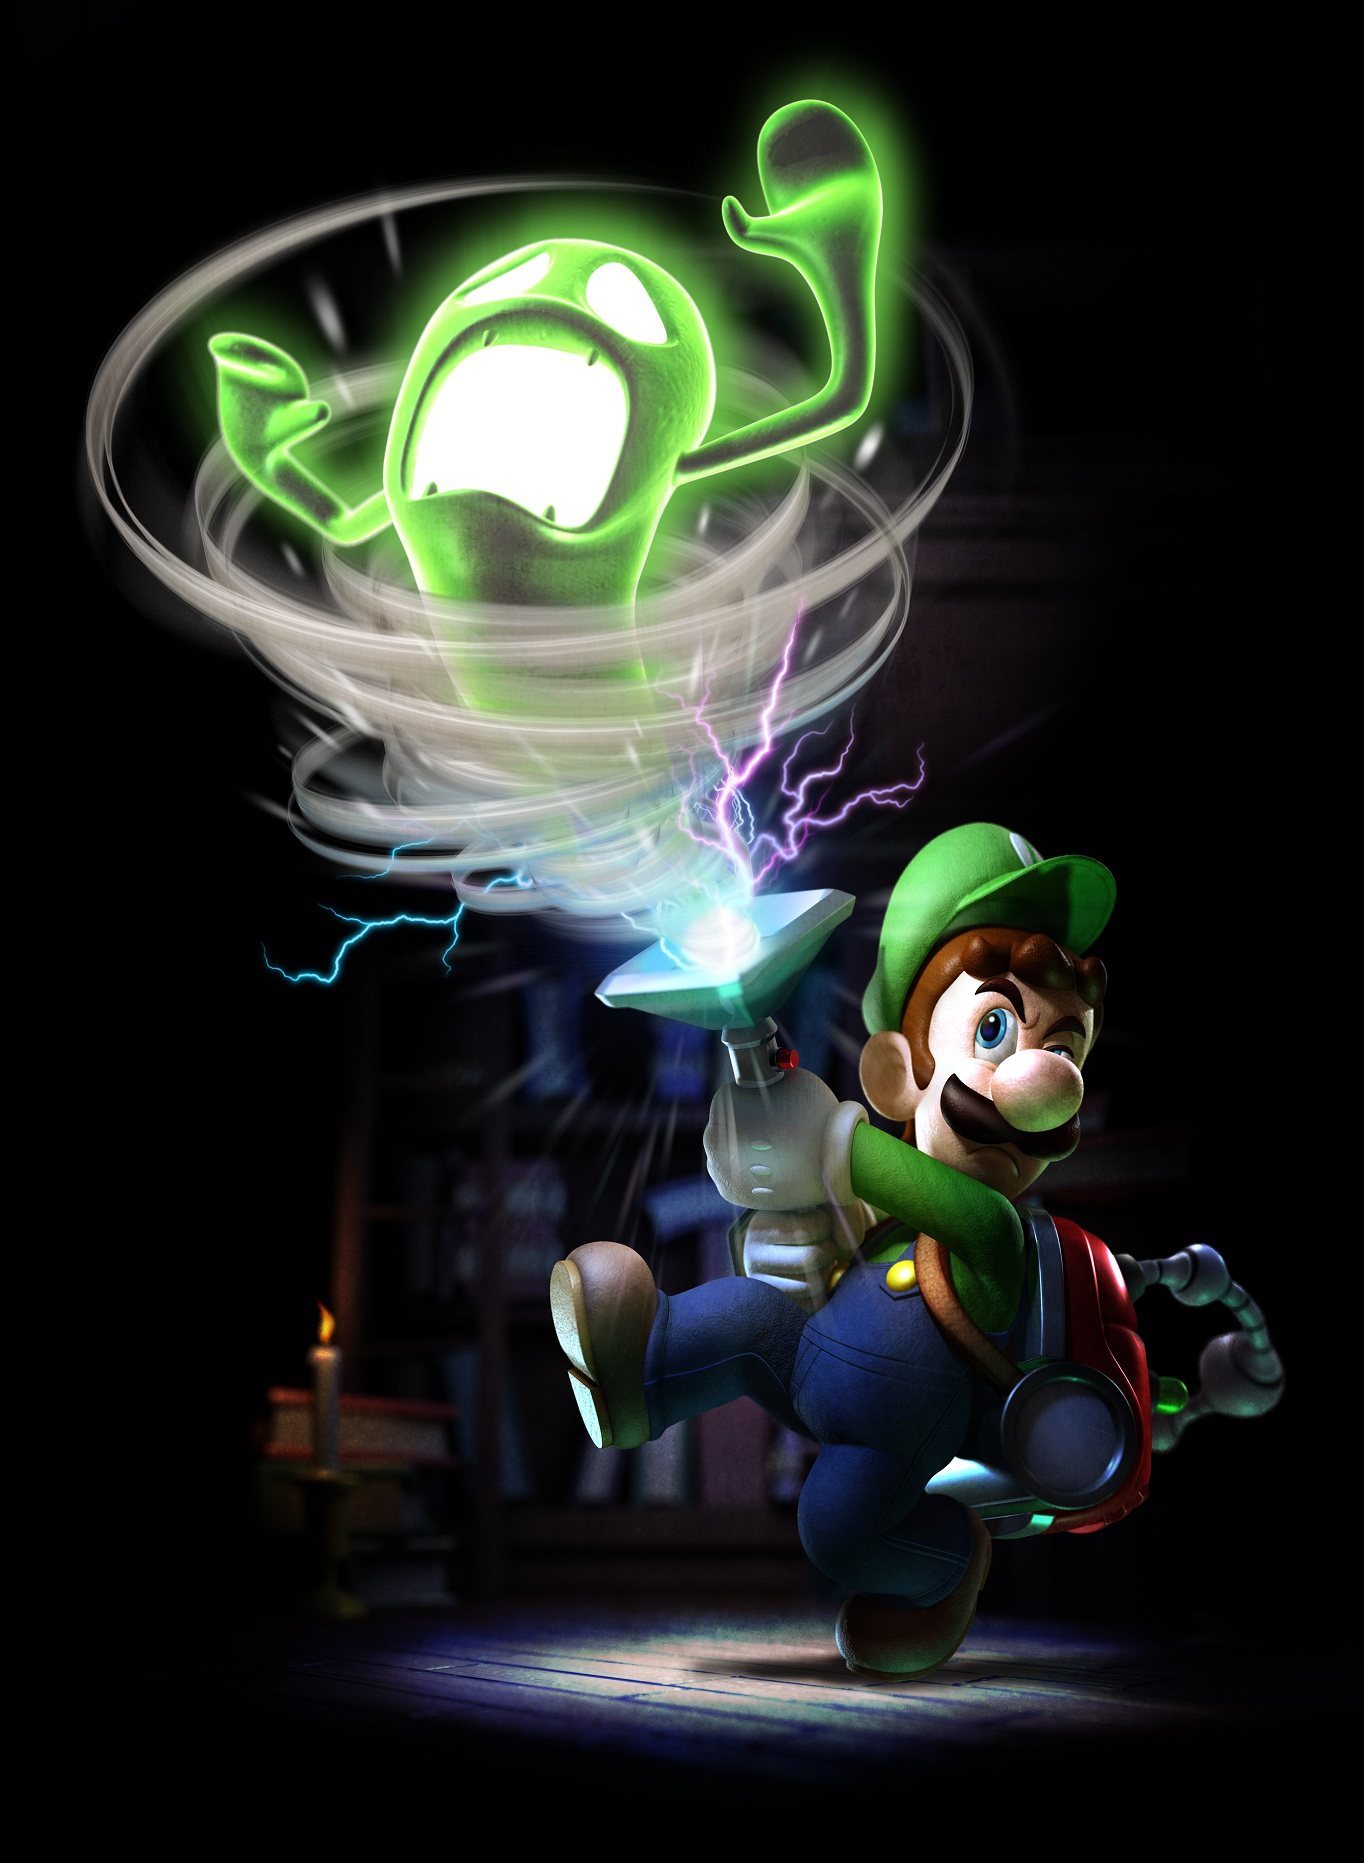 Amazing Luigi's Mansion 2 Pictures & Backgrounds